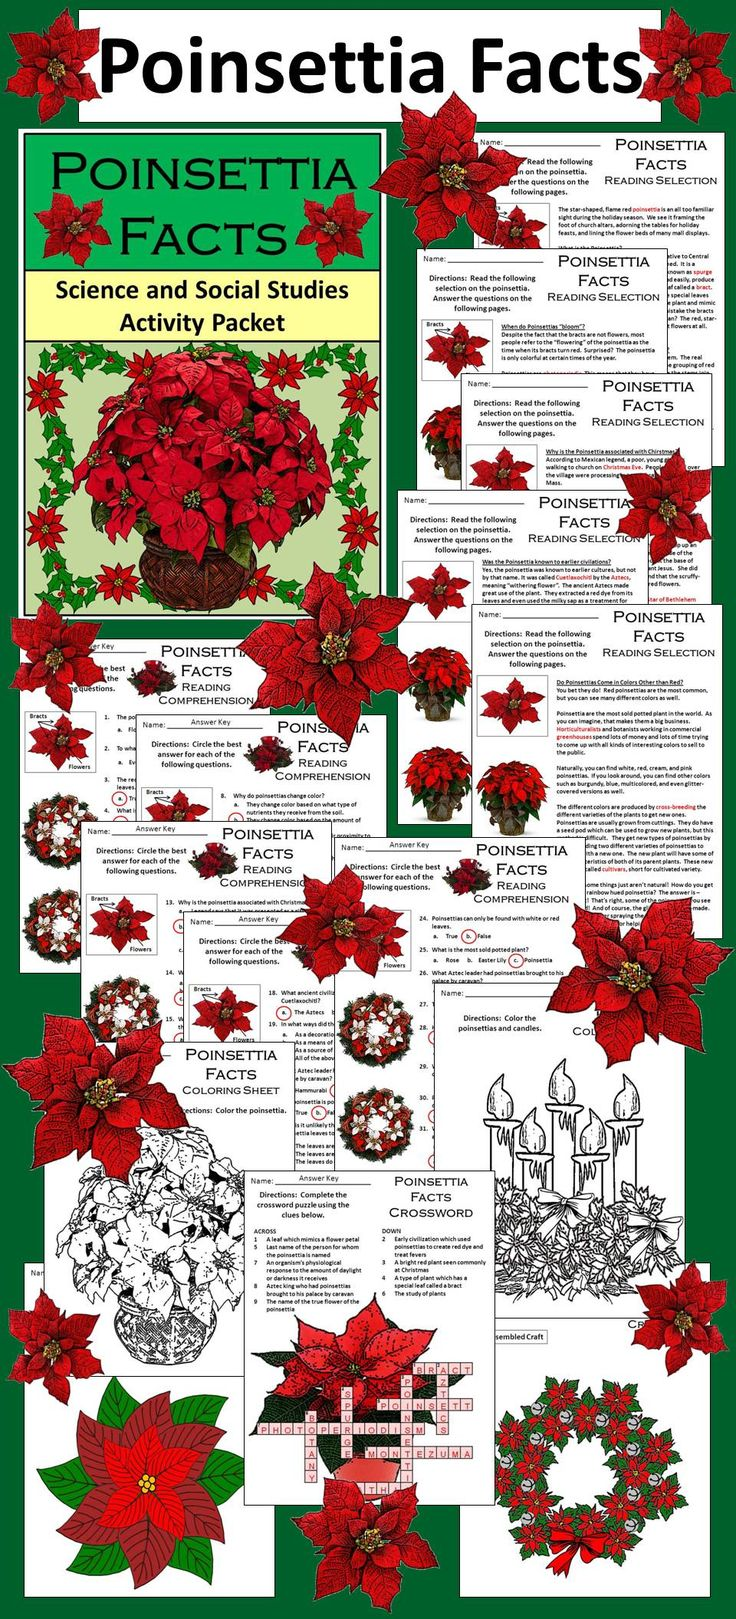 Poinsettia Facts Science & Social Studies Christmas Activity Packet: This colorful cross-curricular Christmas activity packet details the biology, history, and tradition surrounding beloved Christmas plant, the poinsettia.  Contents include: * Five Christmas reading selections and comprehension quizzes * Poinsettia vocabulary crossword puzzle * Poinsettia construction craft * Poinsettia wreath construction craft * Poinsettia coloring sheets * Answer keys